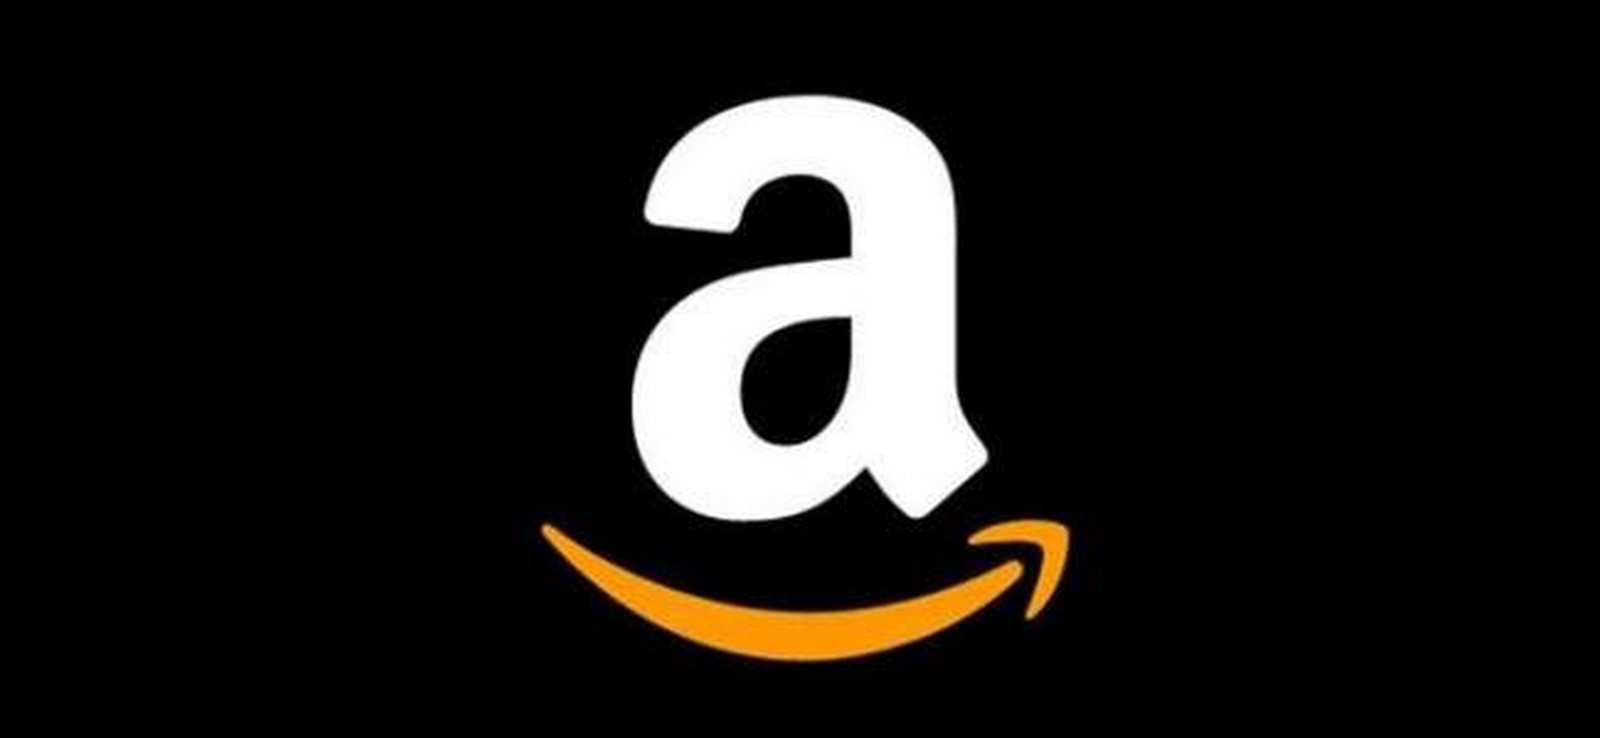 Discounted Gift Cards on Amazon